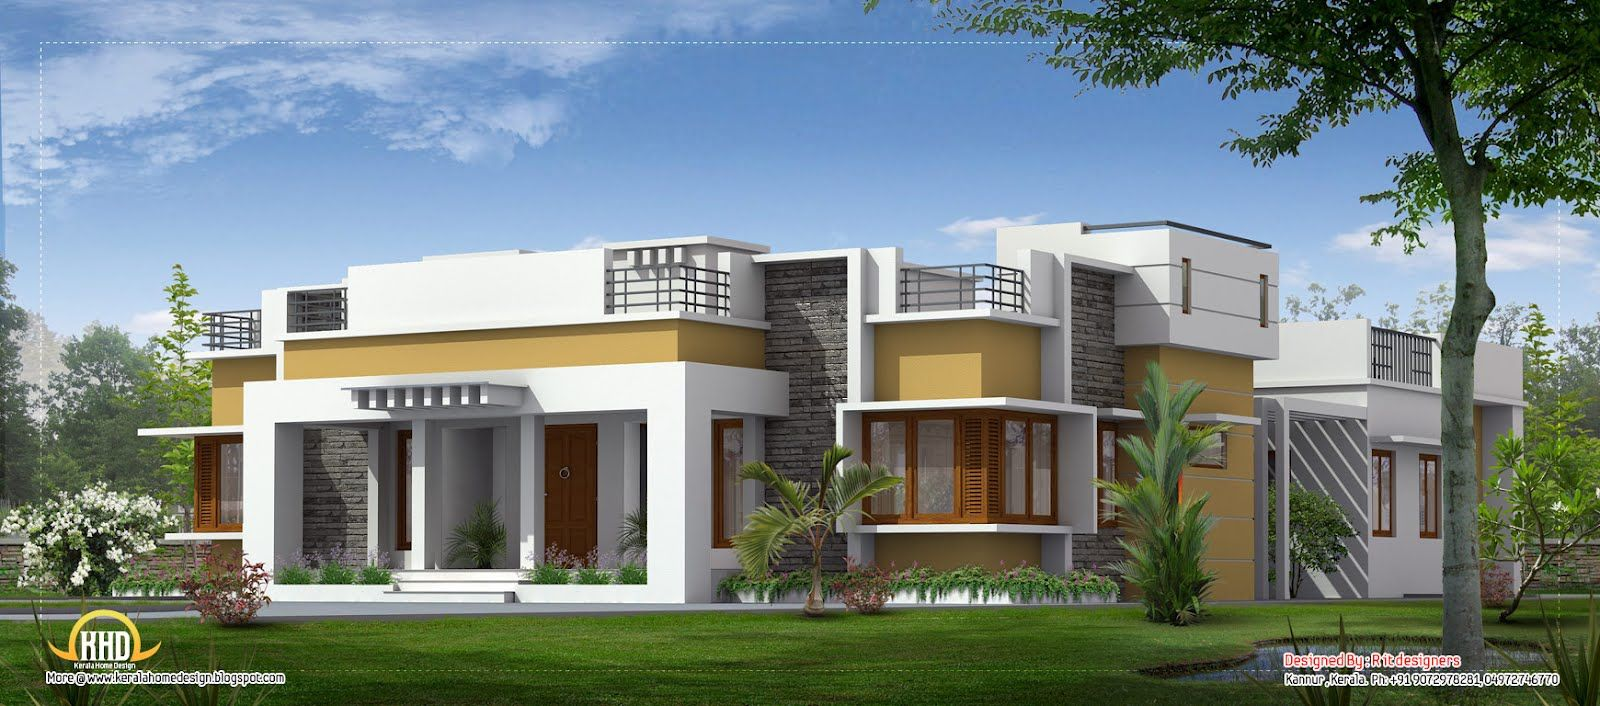 Single level designer home single floor house plans for Floor elevation